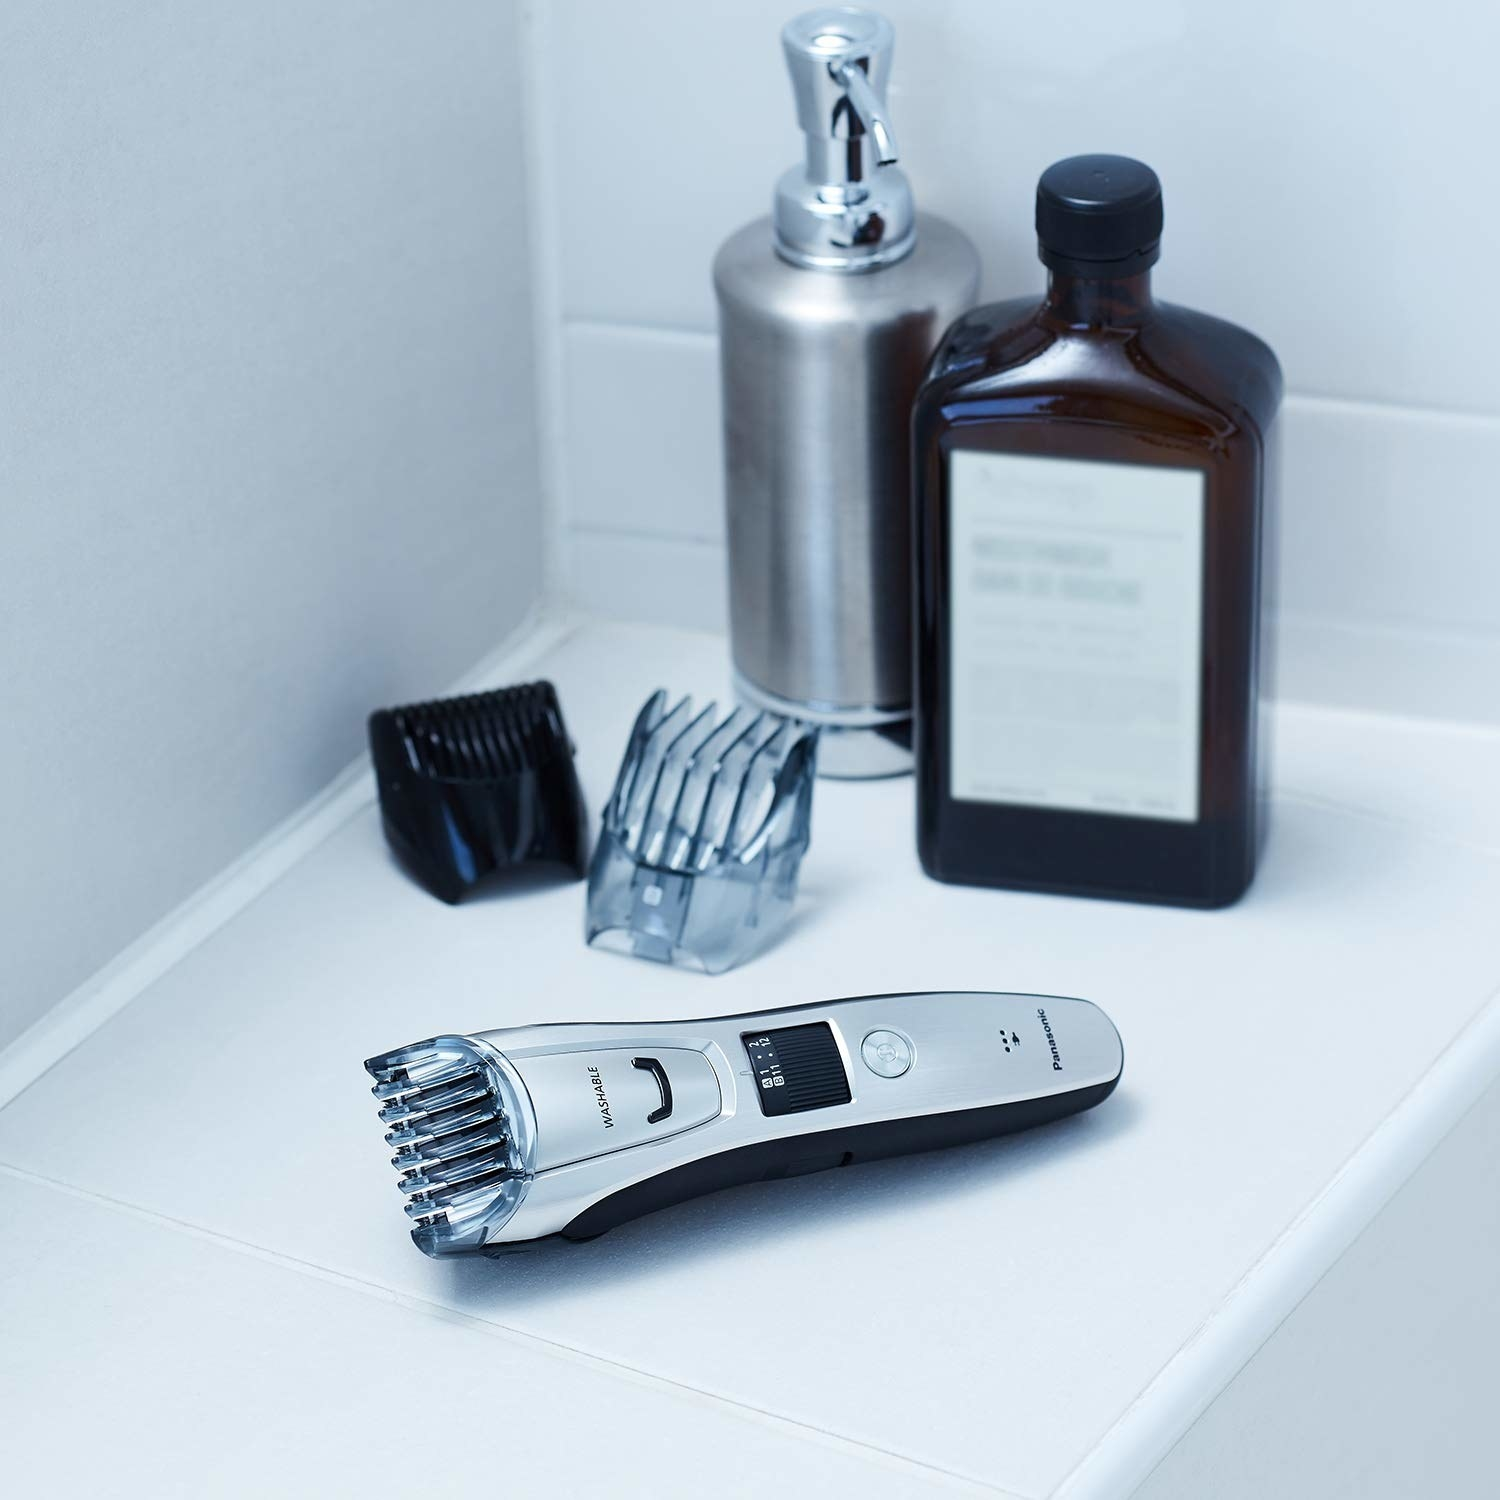 The trimmer with two additional comb attachments